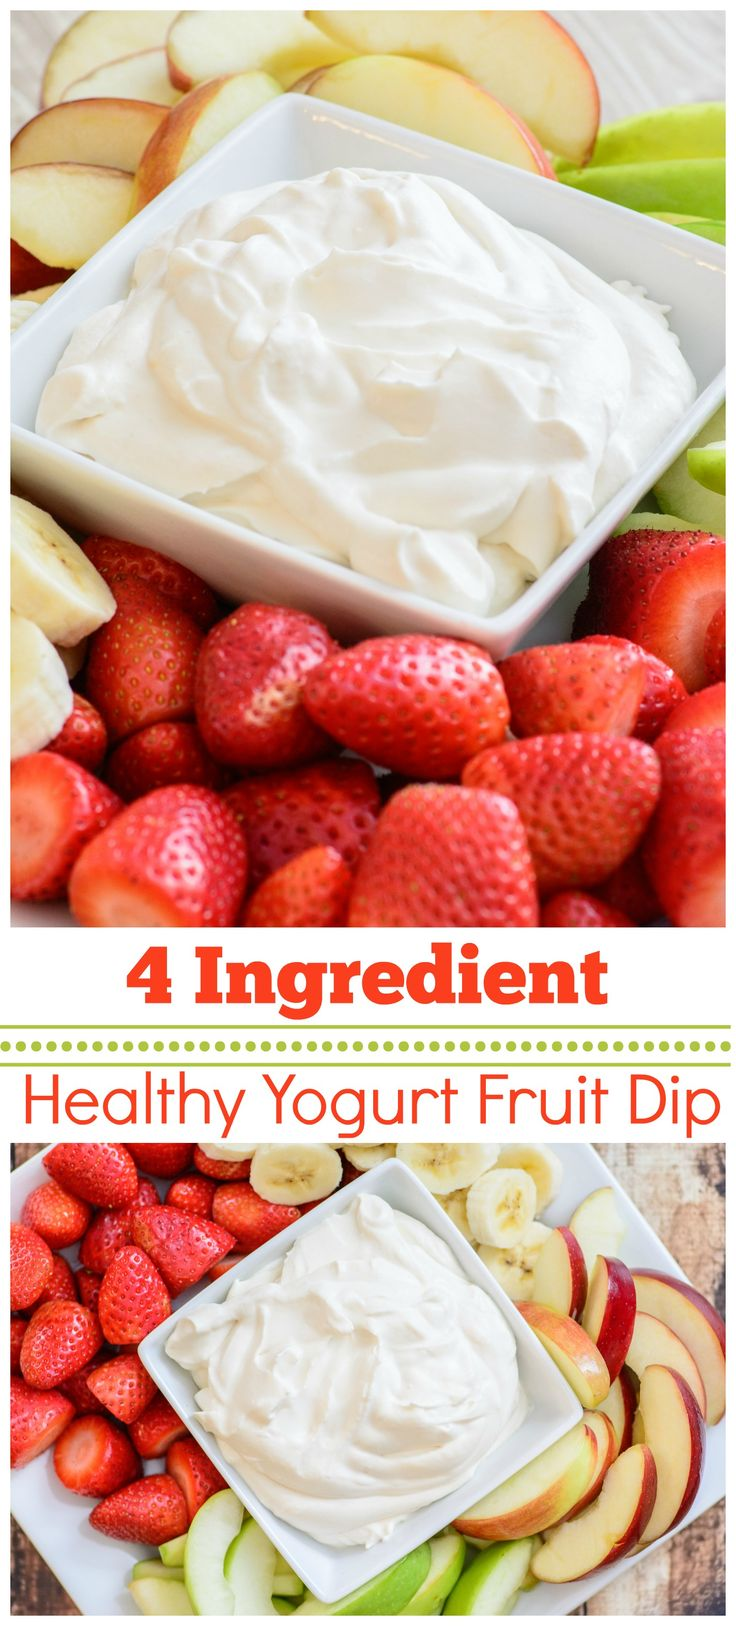 Healthy 4 Ingredient Yogurt Fruit Dip. This healthy and delicious recipe is the perfect compliment to any fruit plate. Made with 3 simple and pure ingredients this fruit dip recipe is sure to be a hit no matter where you serve it!